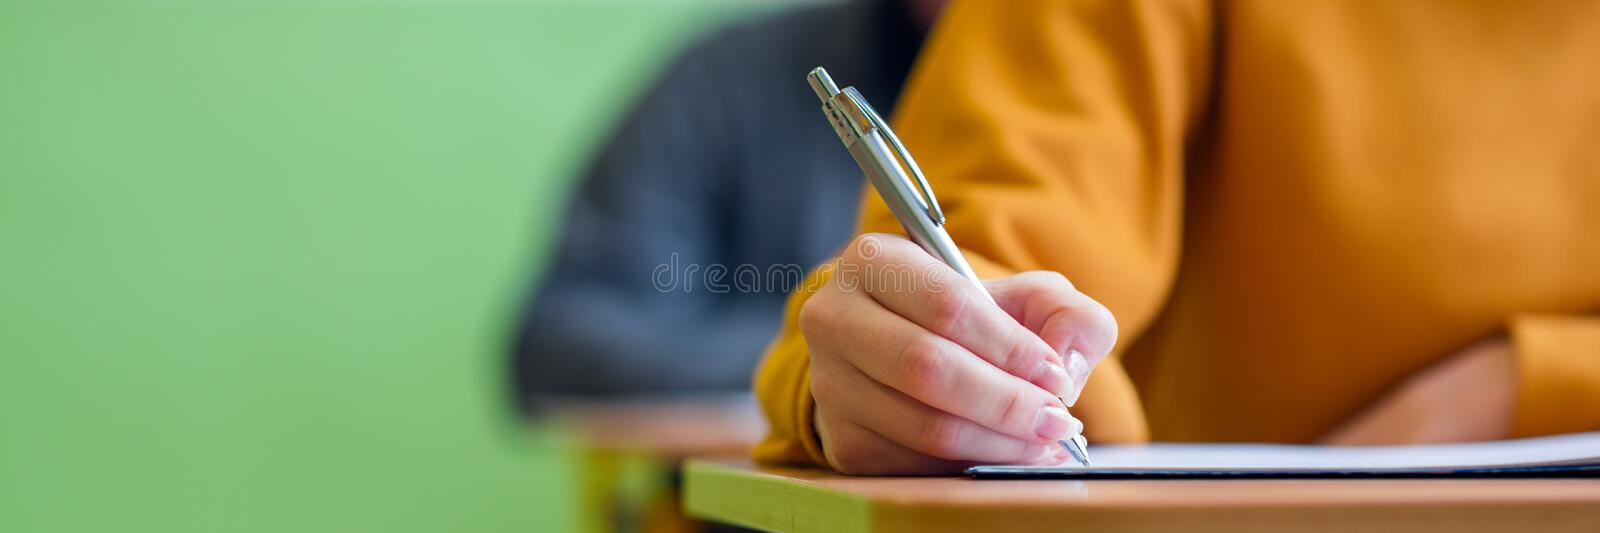 Students taking exam in classroom. Education test and literacy concept. Cropped shot, hand detail. royalty free stock photography